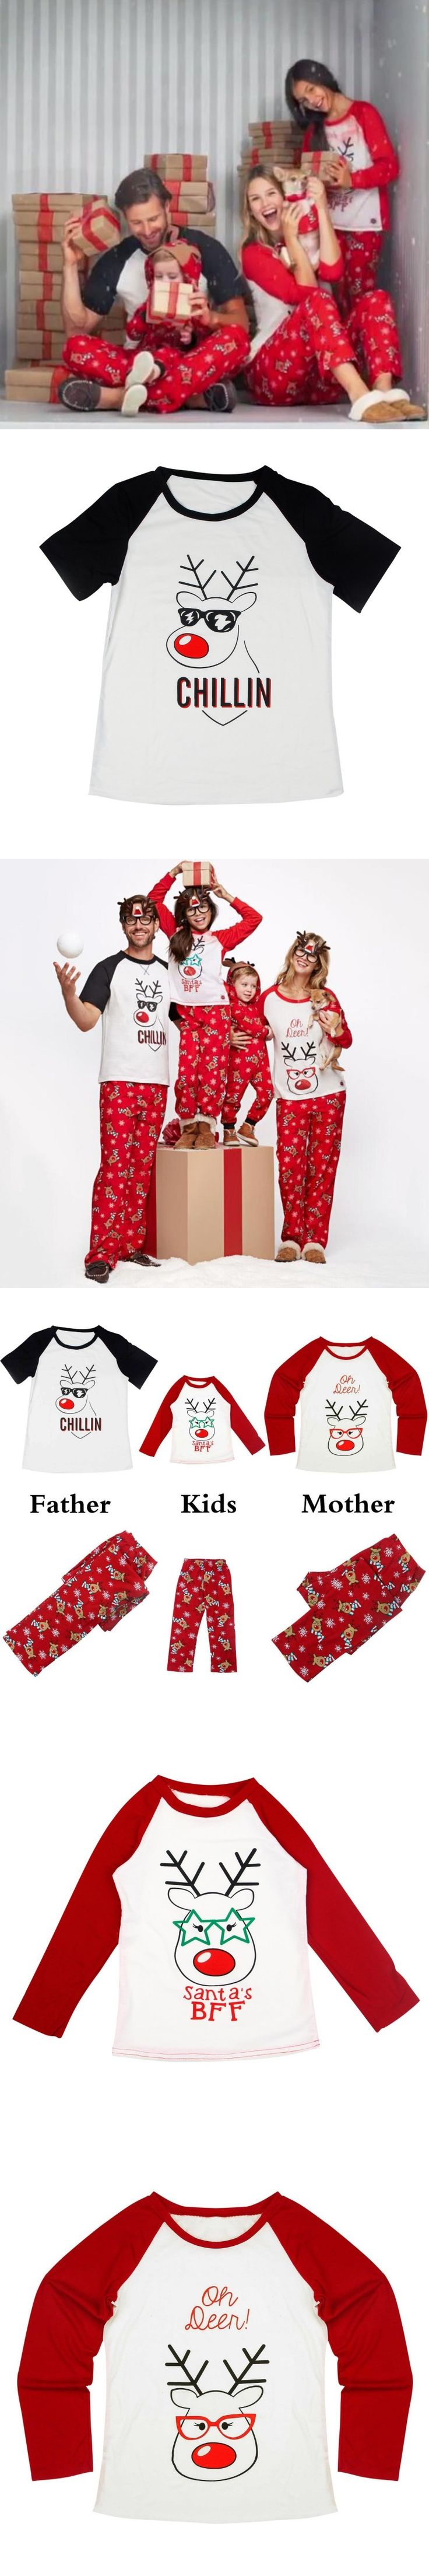 Family Christmas Pajamas Christmas Winter Look Parent-child Set Christmas Deer Stitching Printed 4Size Sleepwear For Family